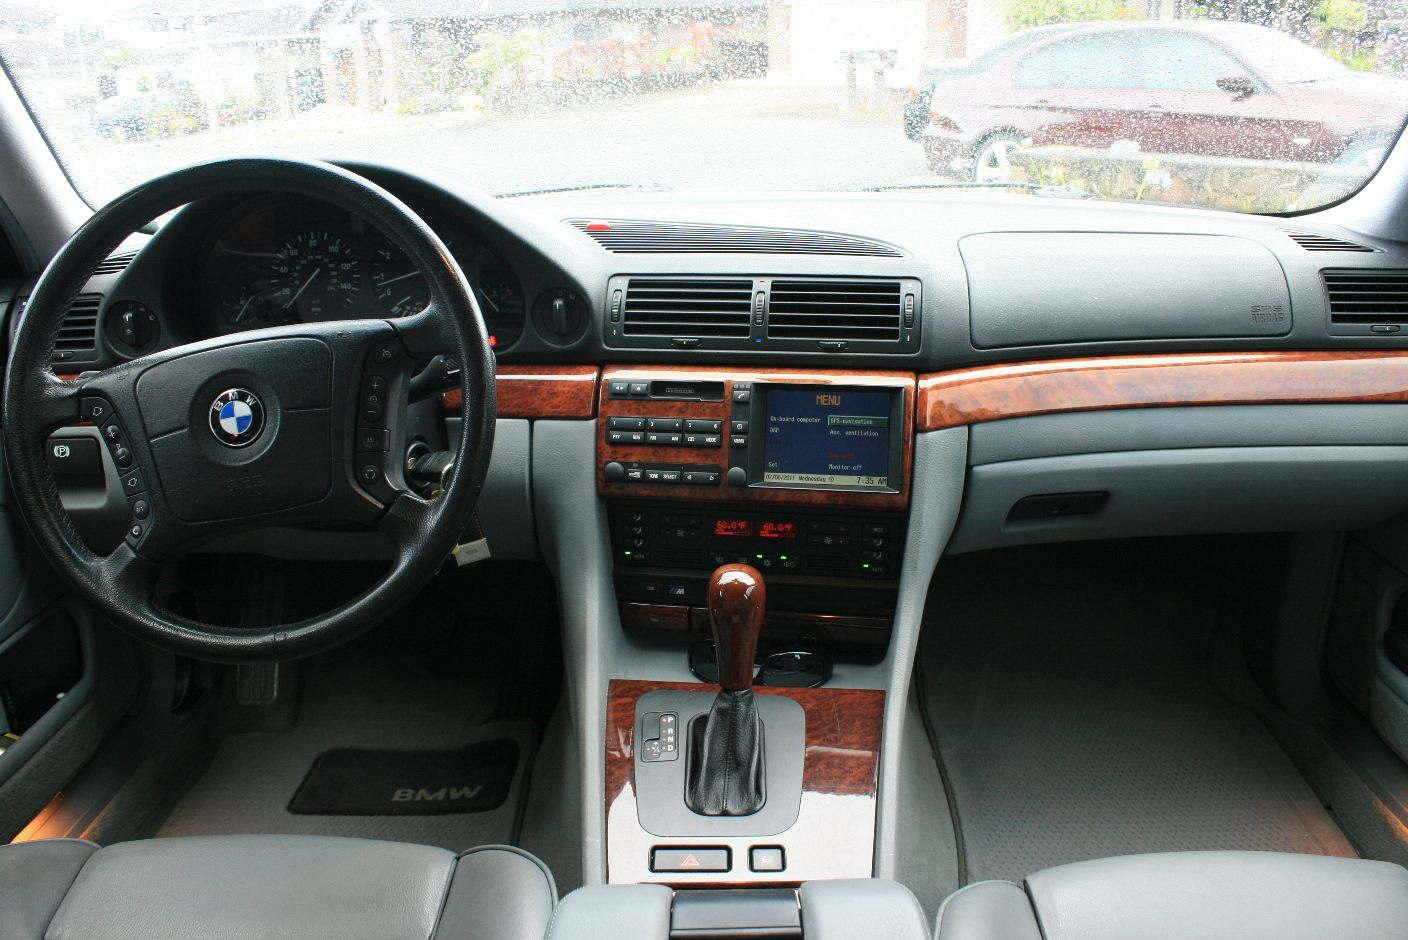 medium resolution of 2000 bmw 740i sport interior dashboard